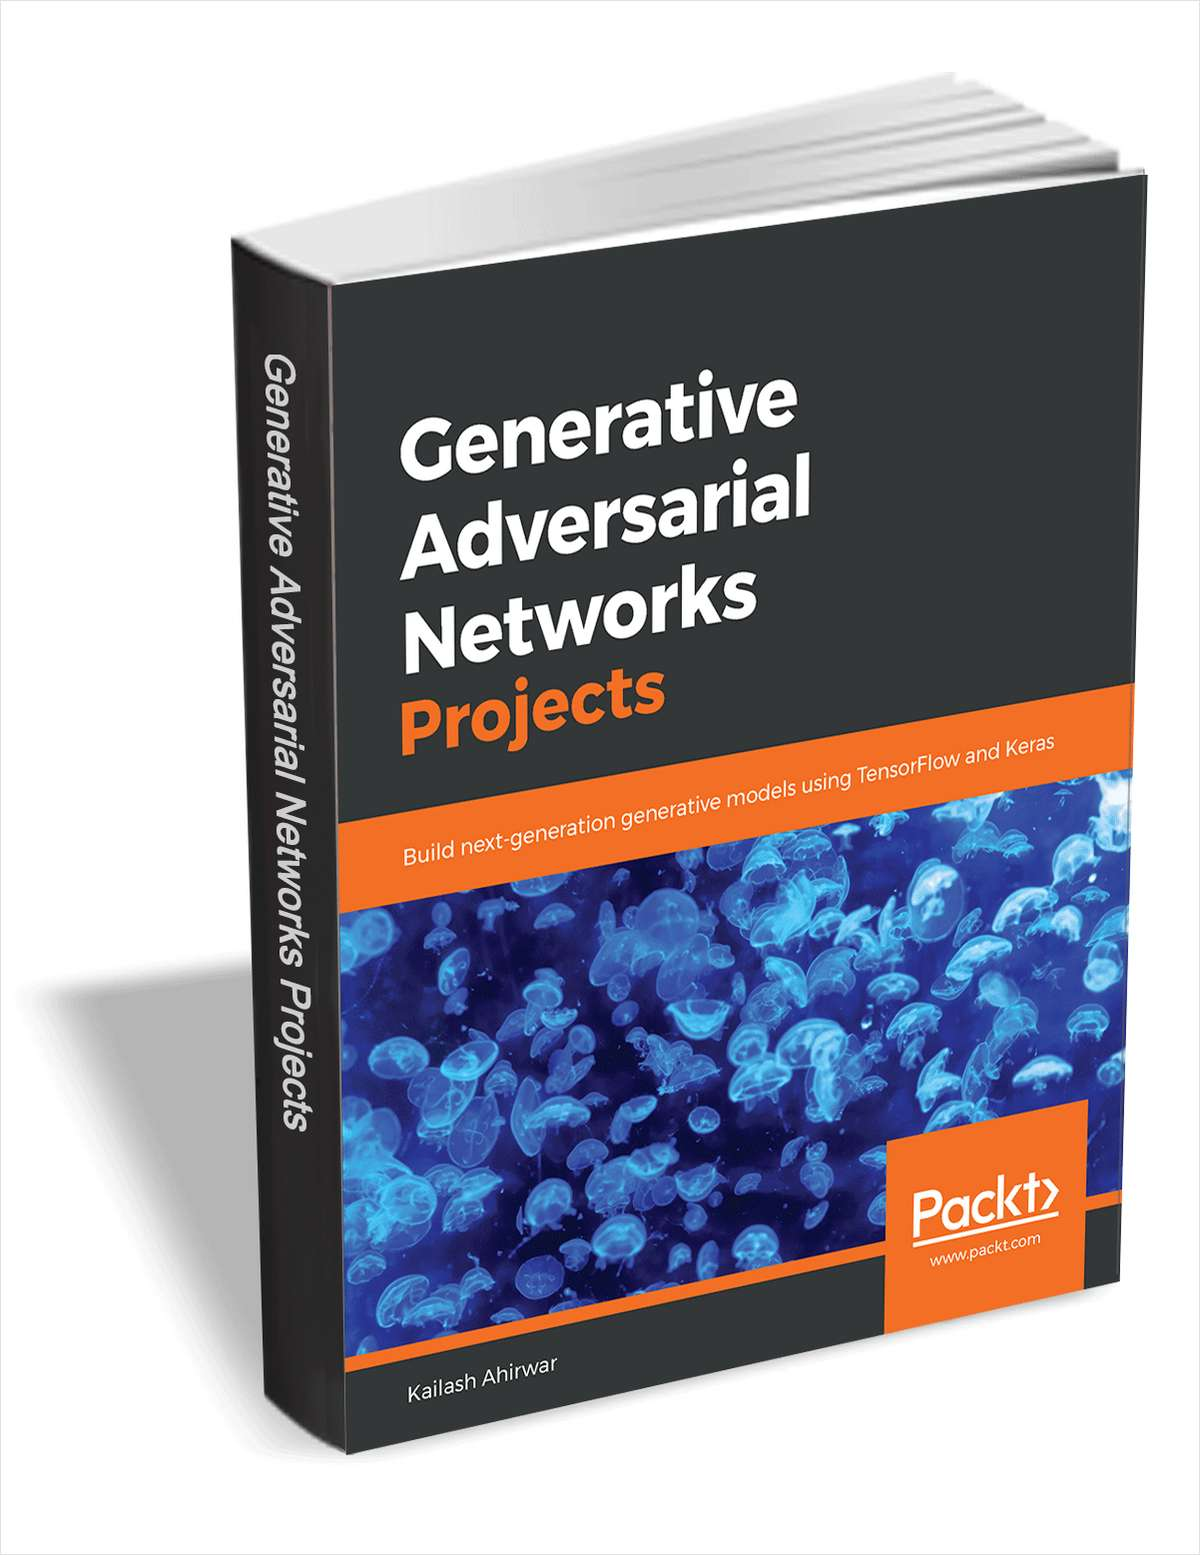 Generative Adversarial Networks Projects - Free Sample Chapters